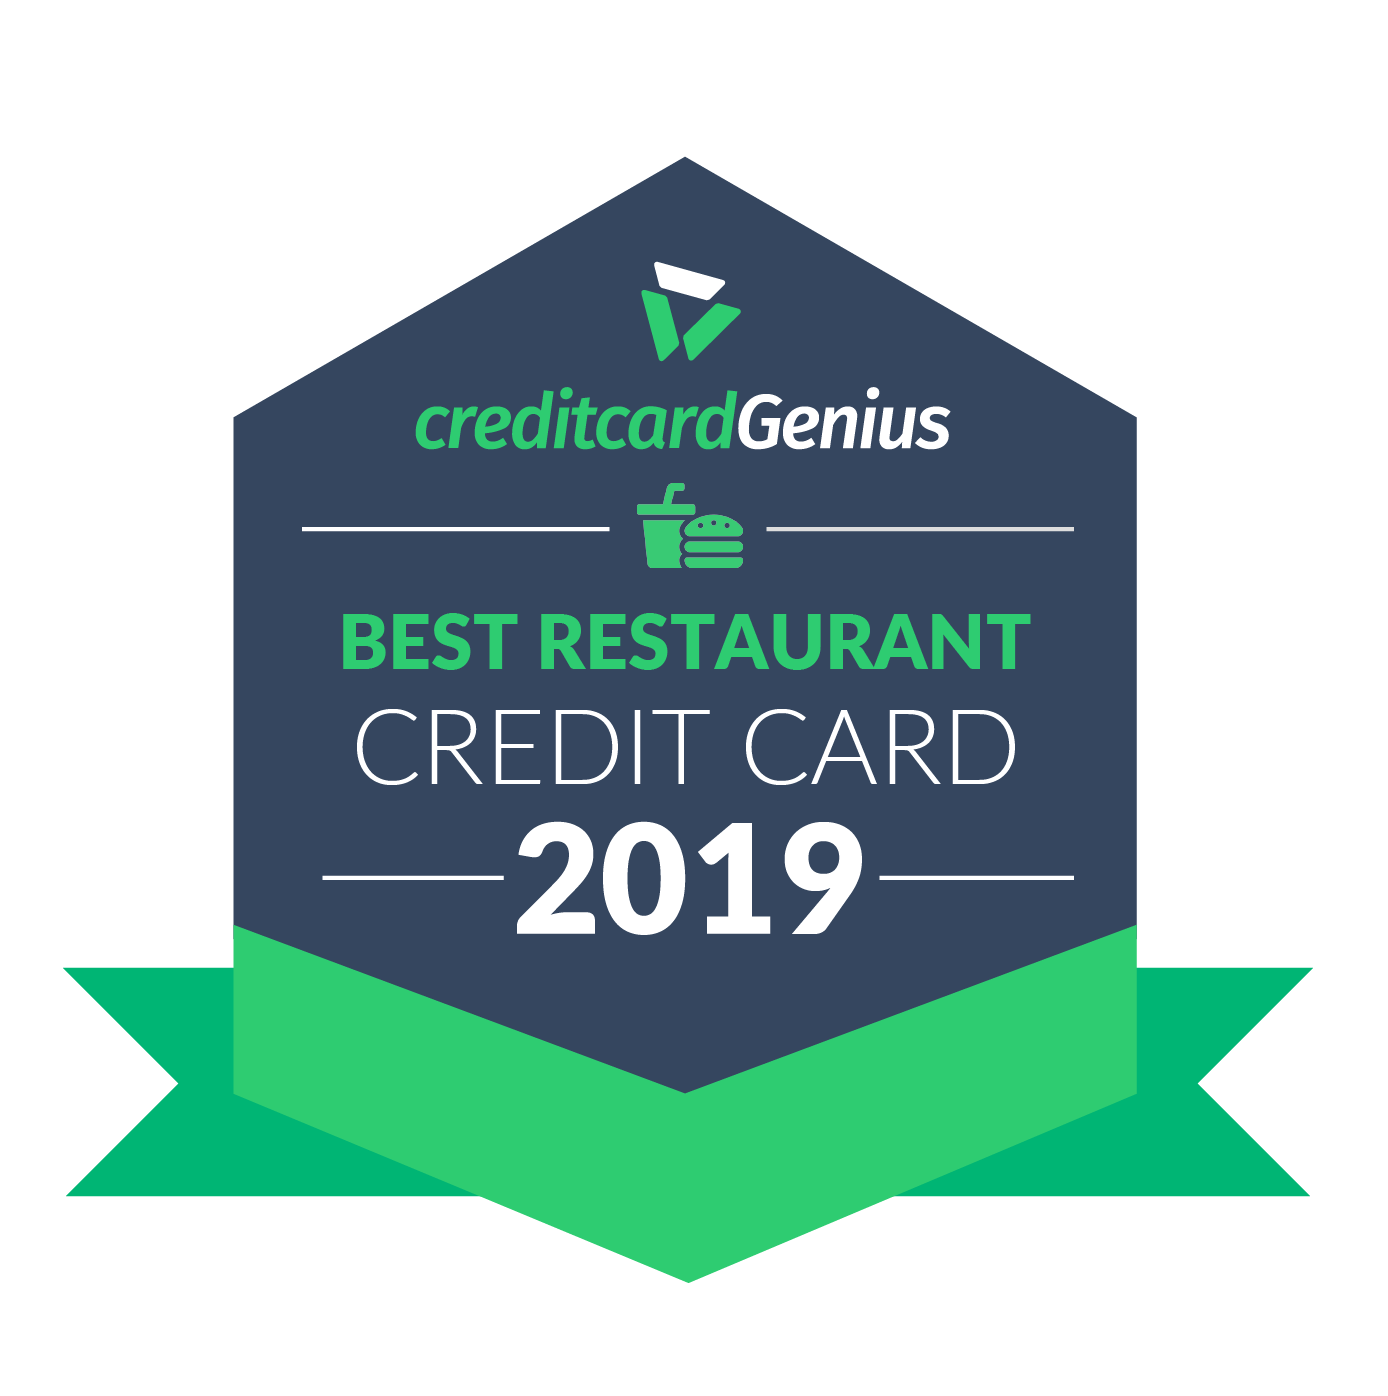 Best restaurant credit cards in Canada for 2019 award seal